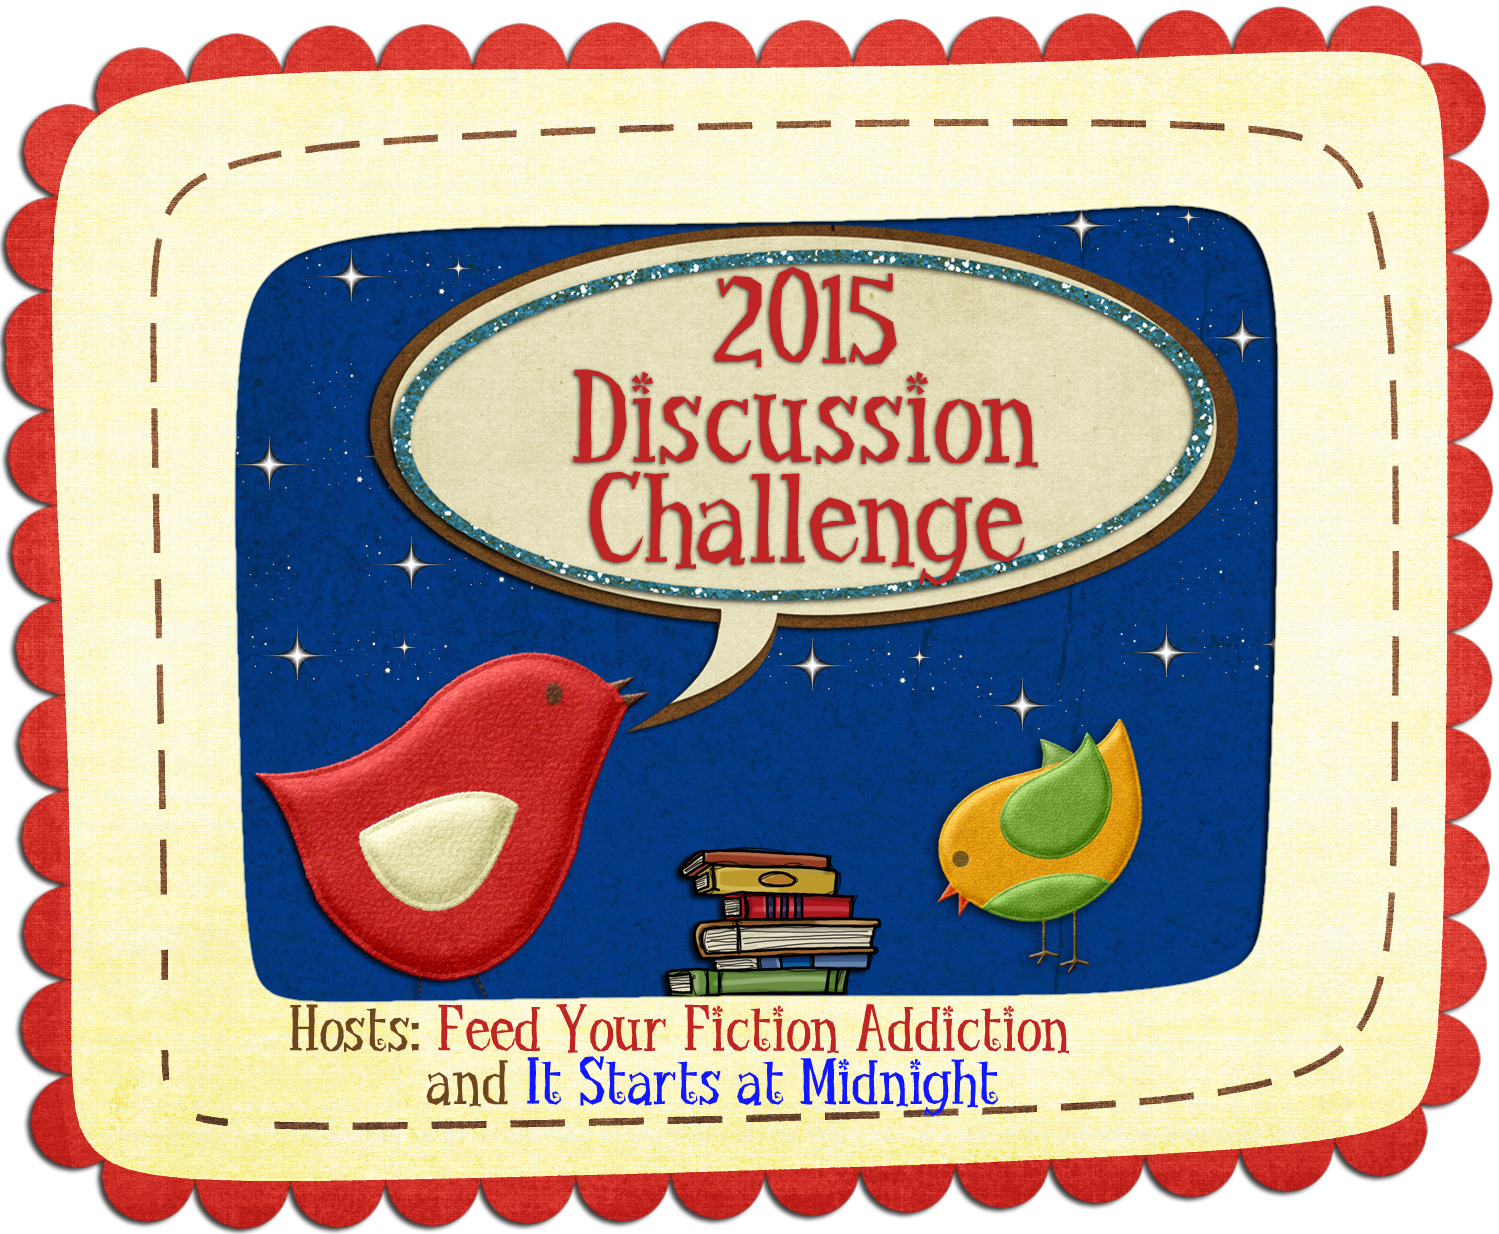 2015 Discussion Challenge